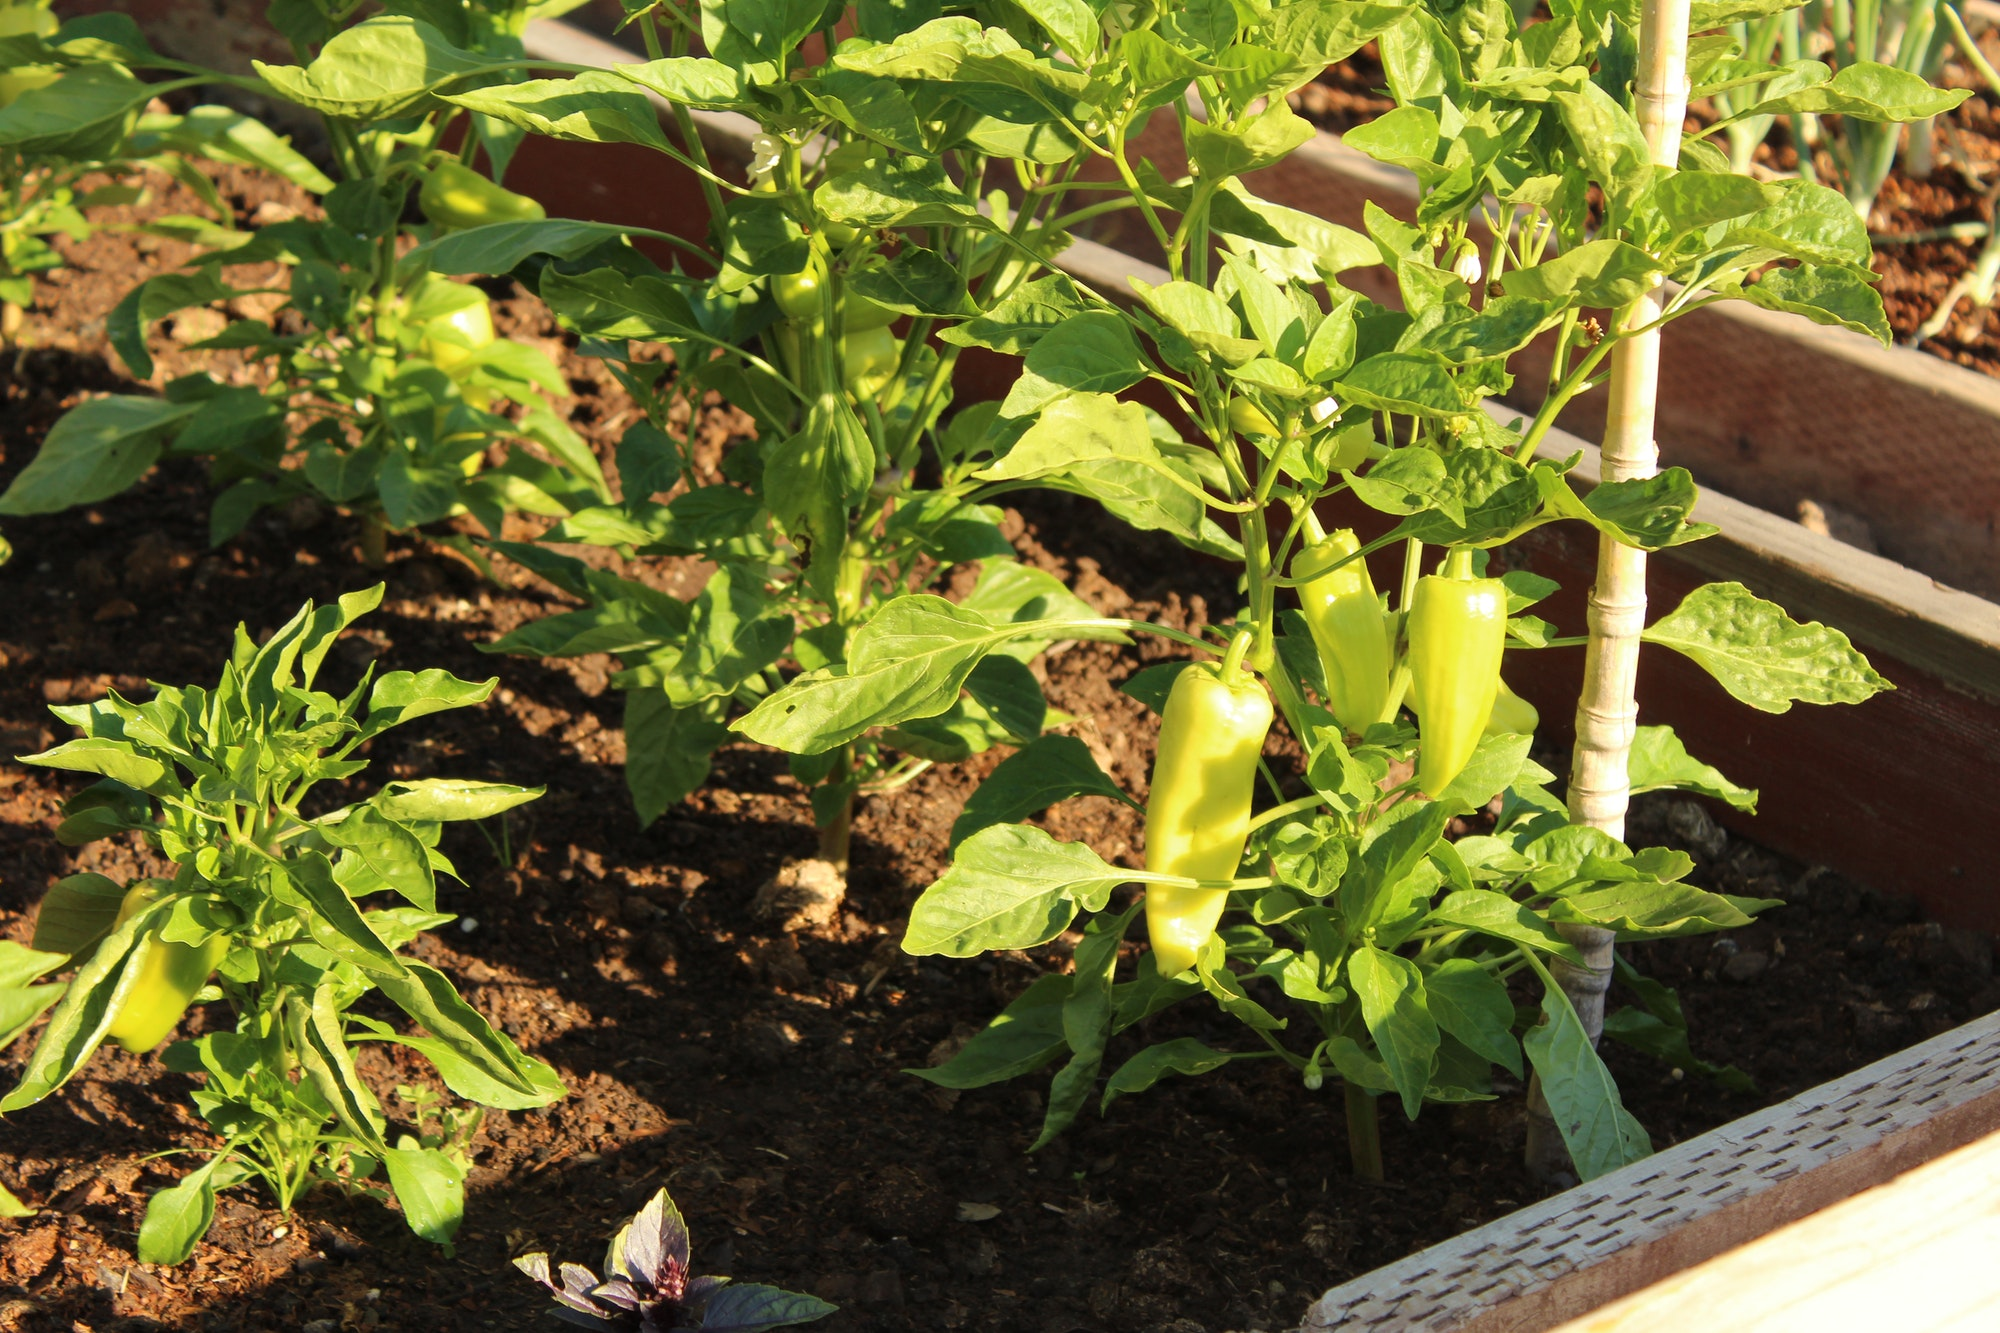 Community Garden: Peppers growing in a planter box